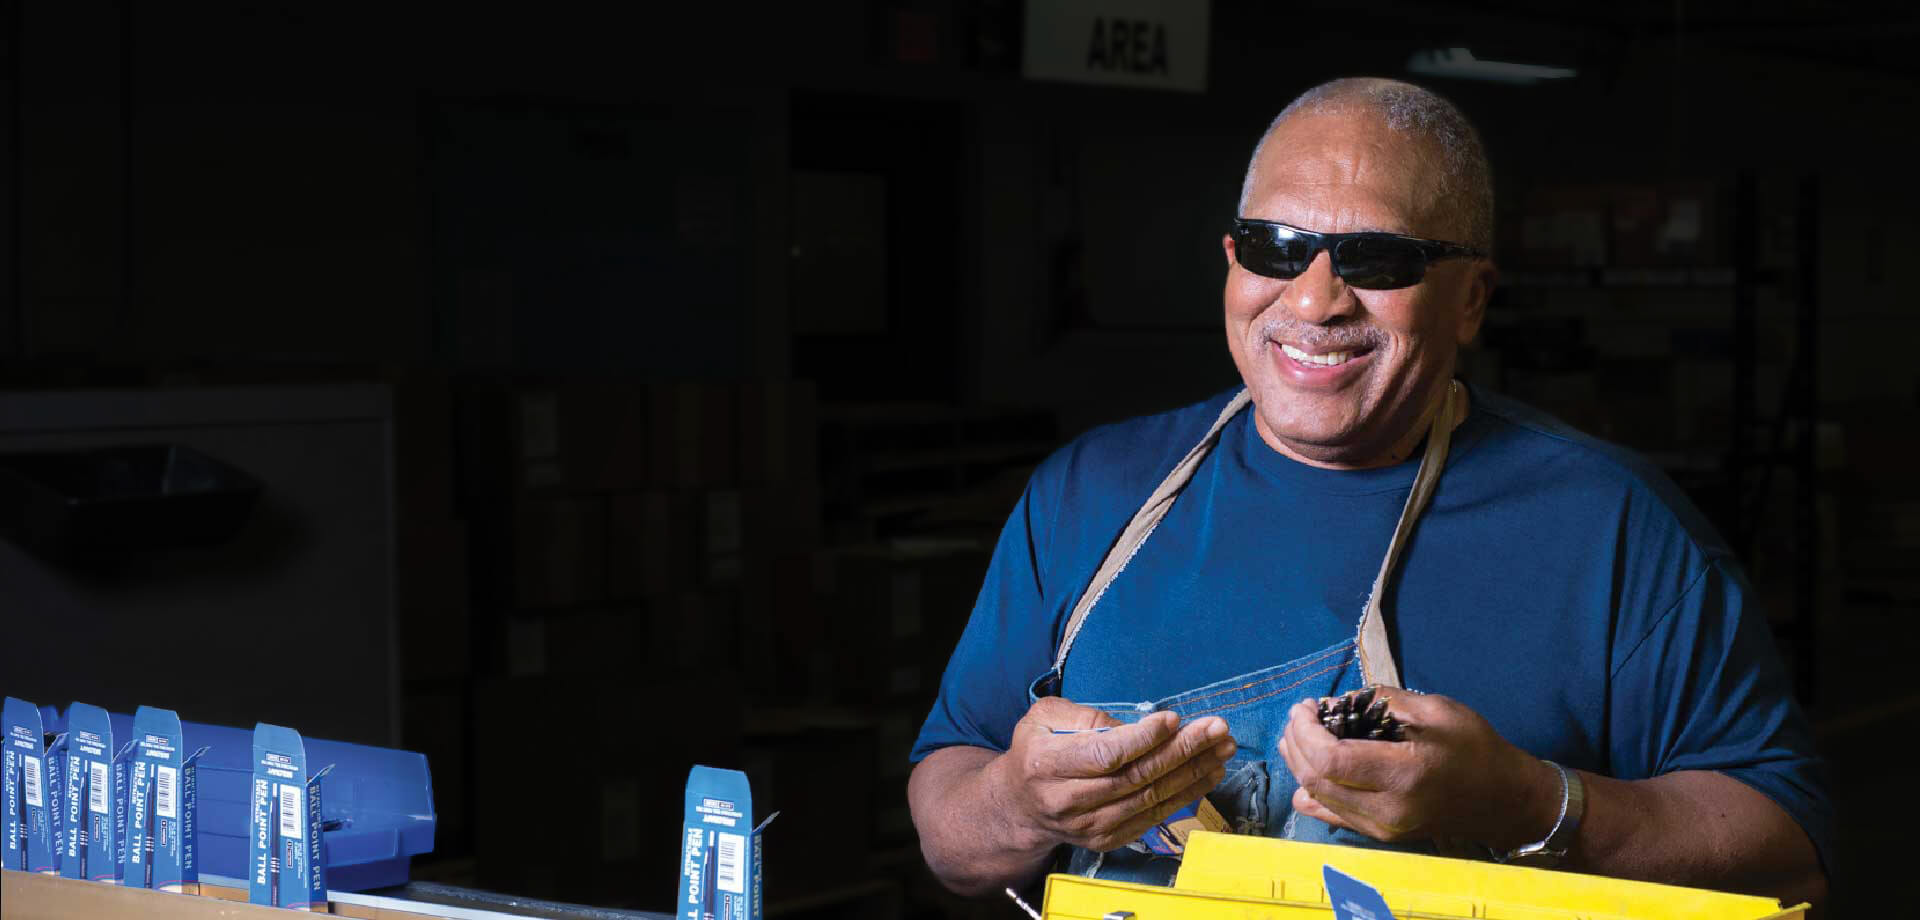 Smiling male employee putting pens into boxes at packaging station